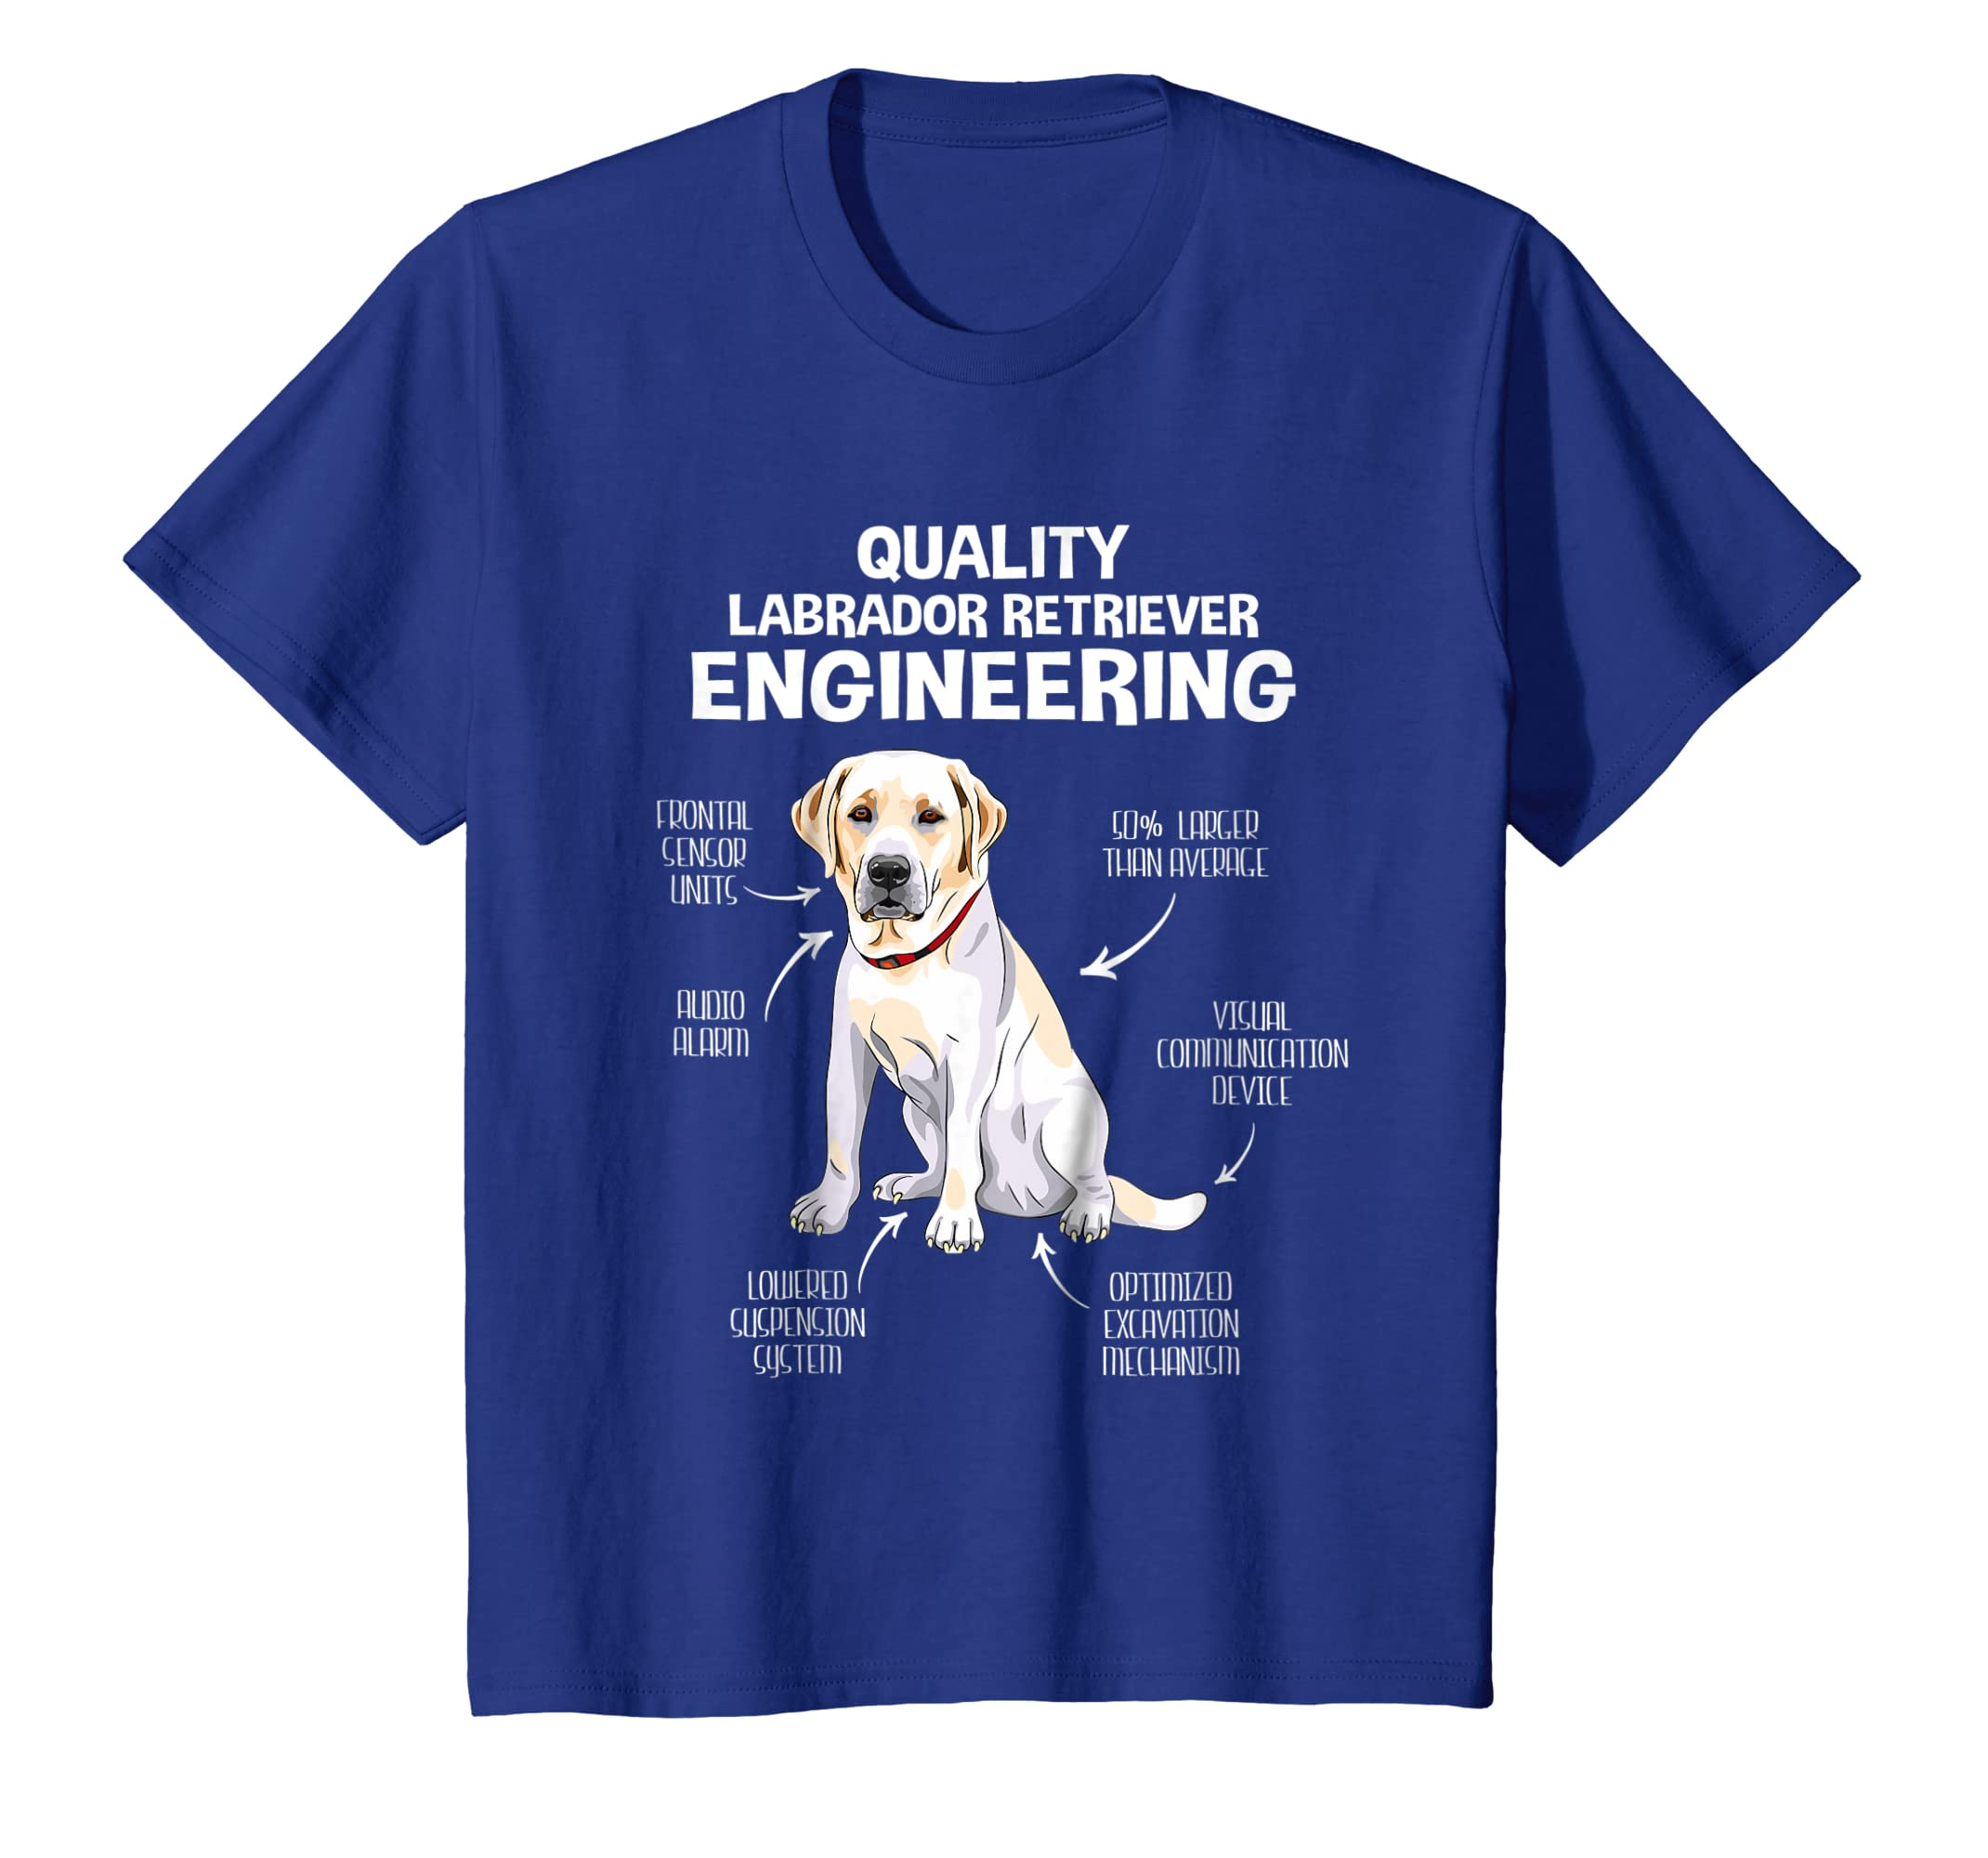 Amazon.com: Quality Labrador Retriever Engineering Dog Lover ...